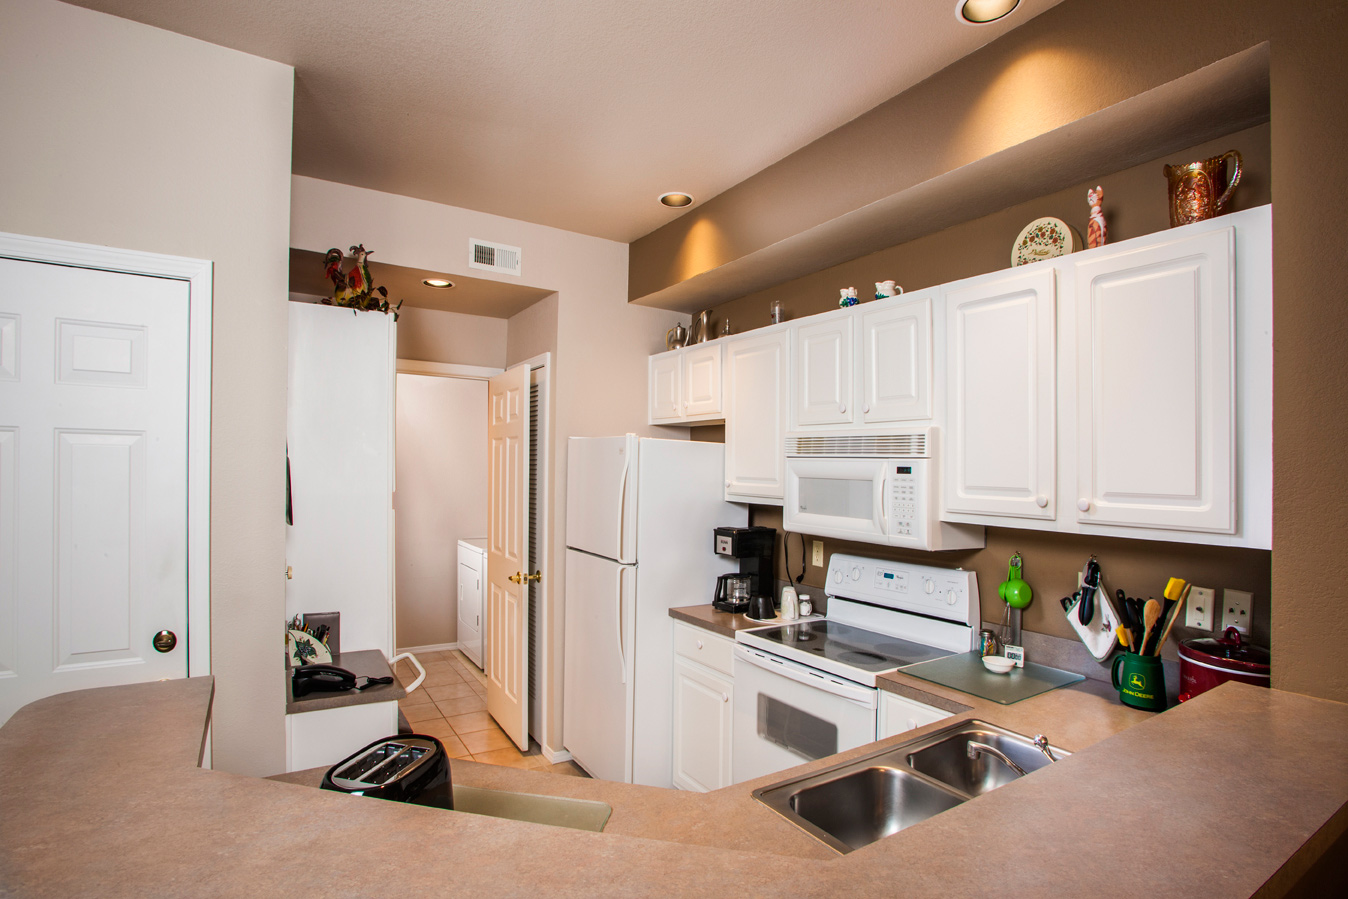 2 Bedroom End Townhome – Kitchen